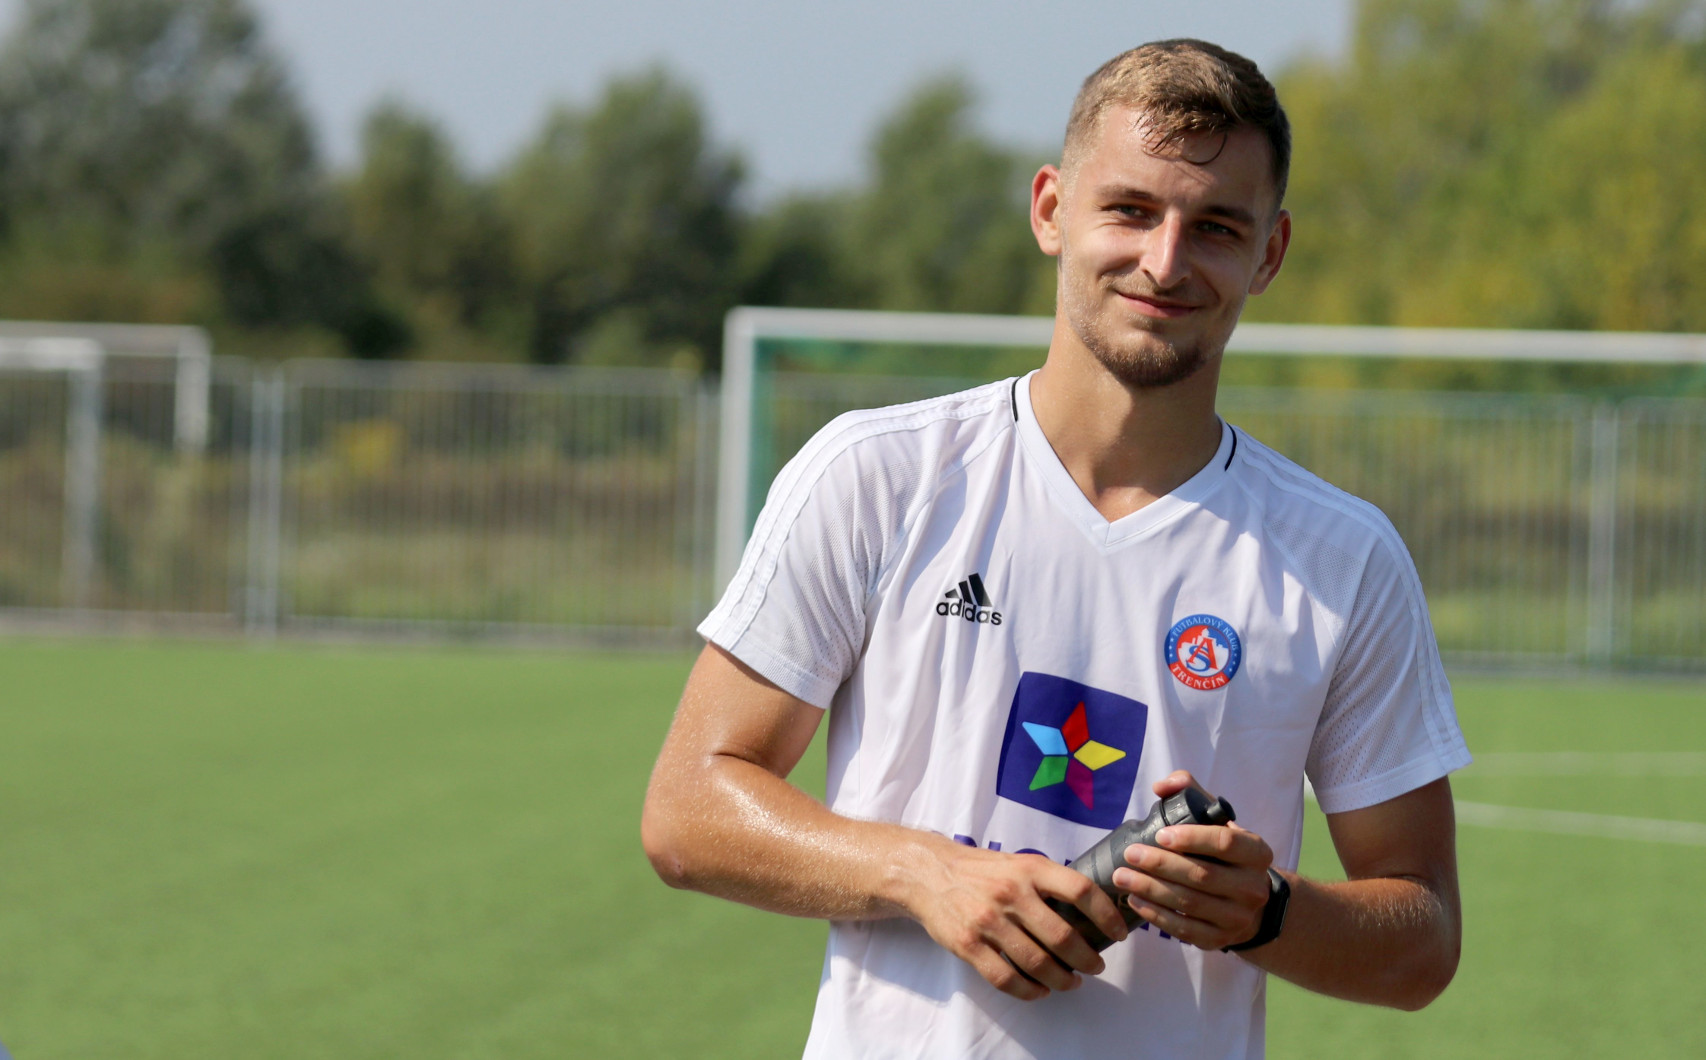 A-team | Križan signed a multi-year contract with AS Trenčín